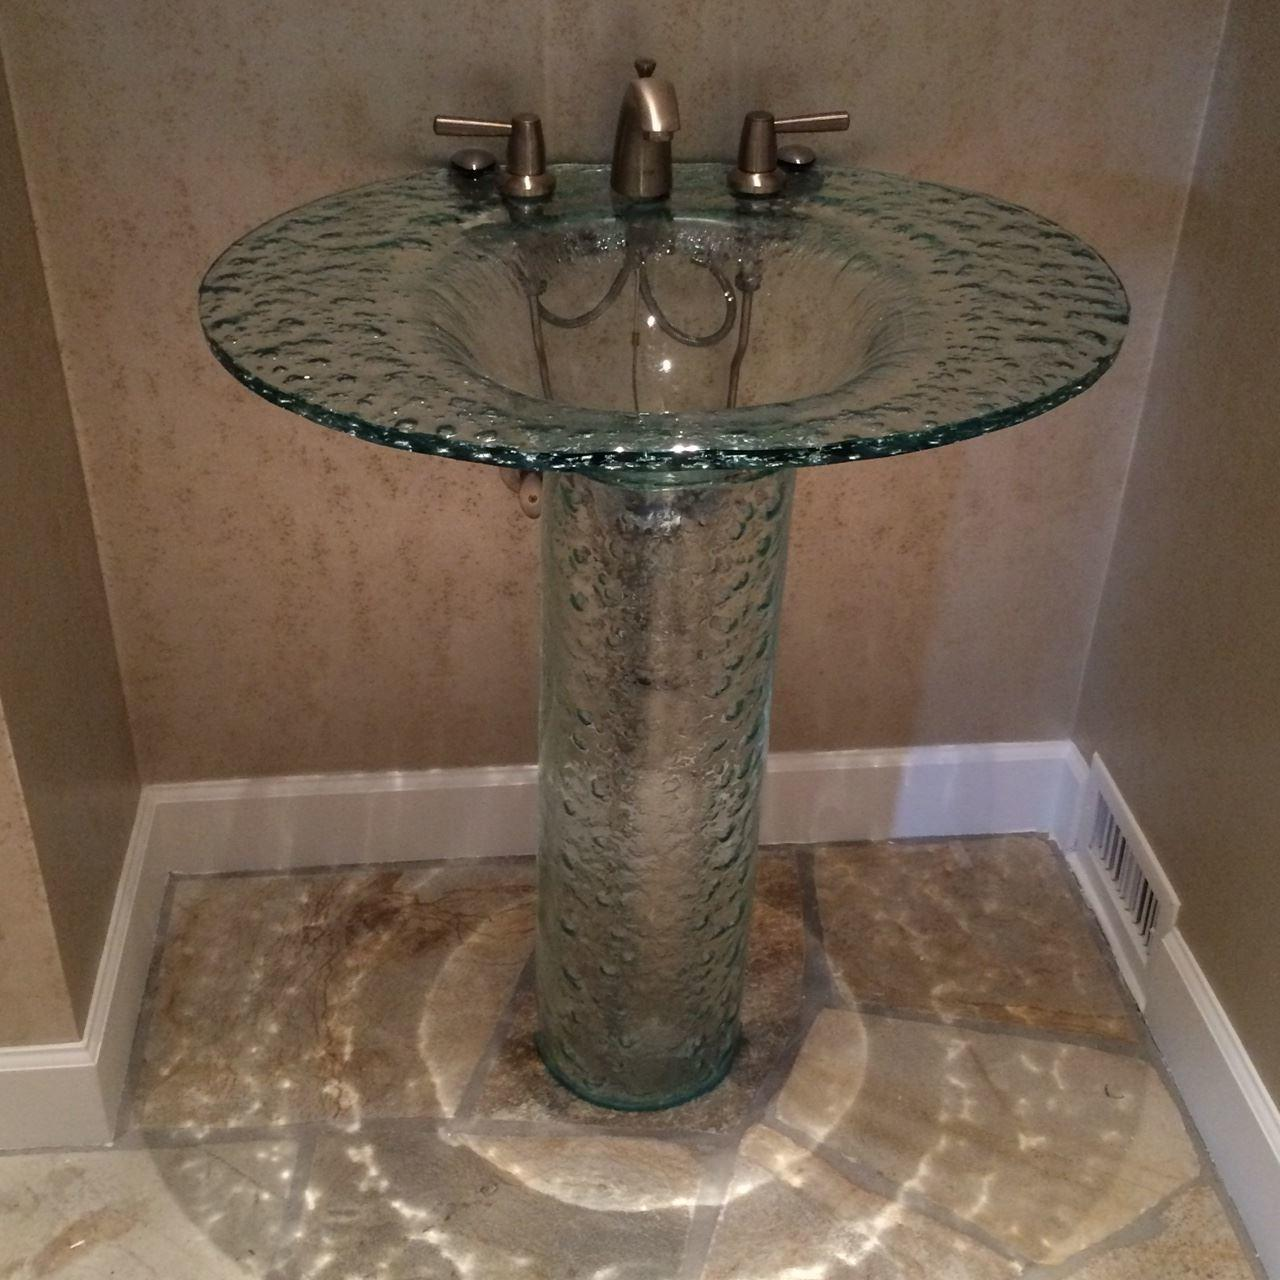 Elliptic Textured Glass Pedestal Sink Sinks